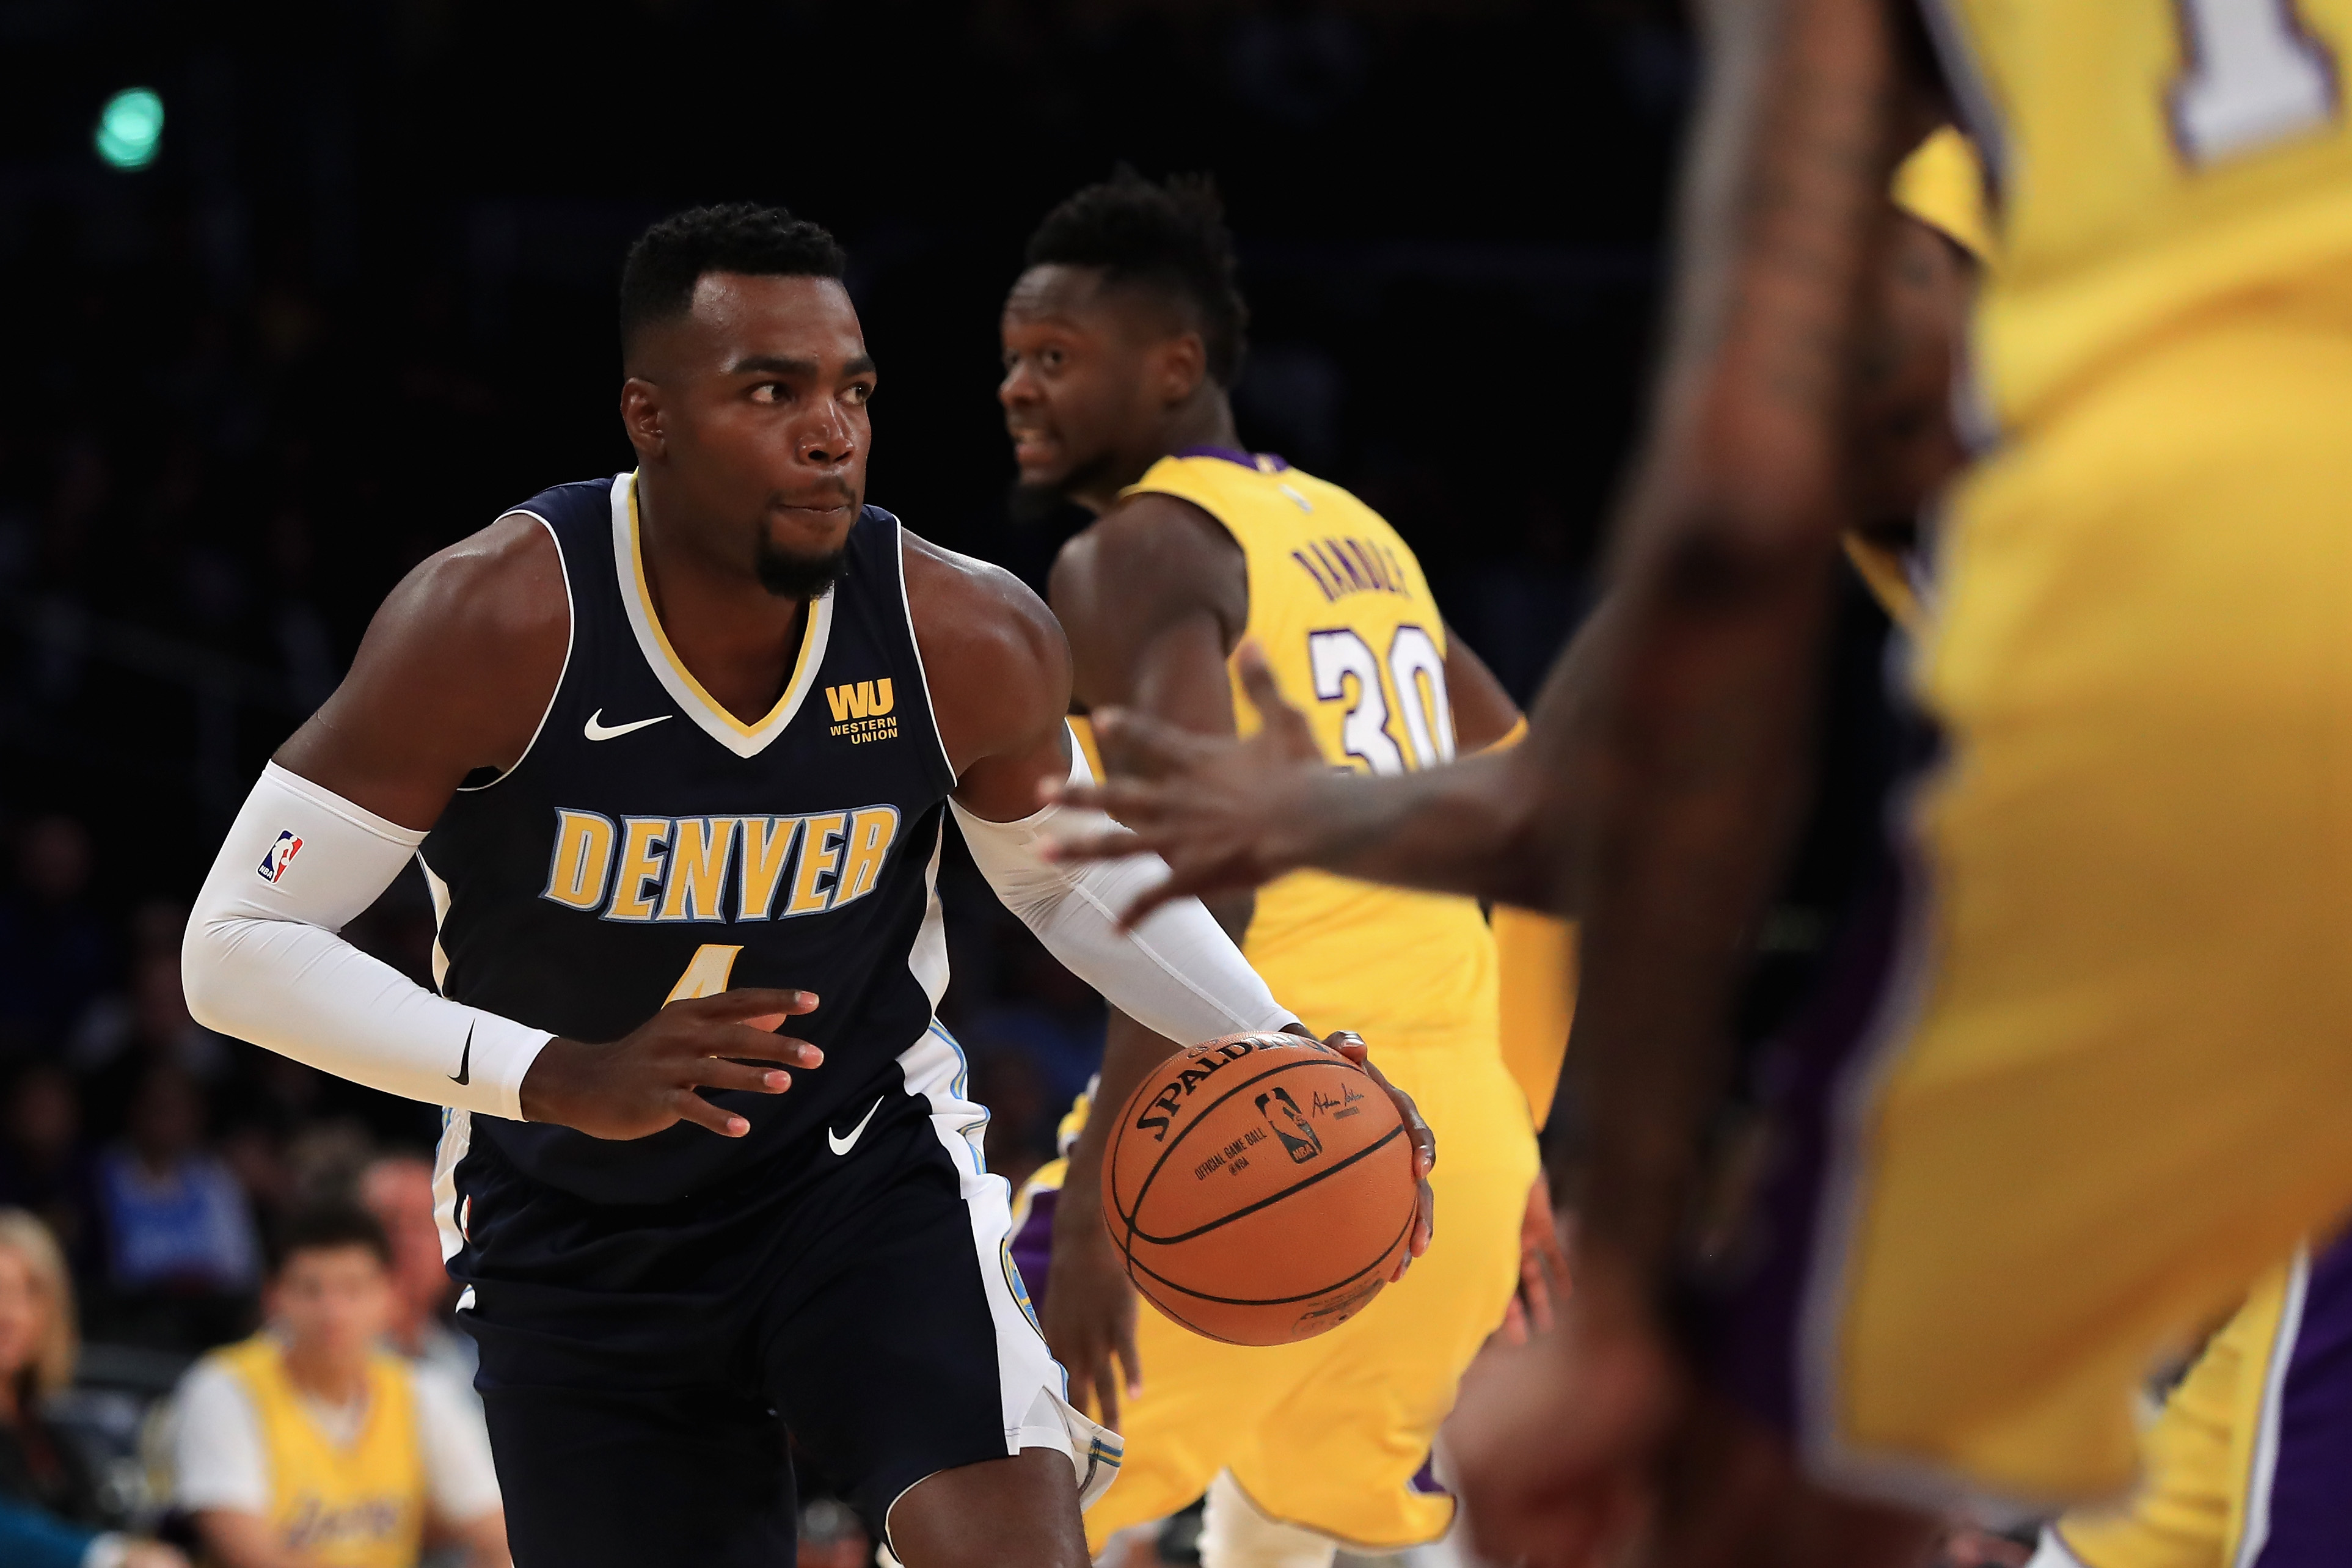 paul millsap will have a positive impact for the denver nuggets.